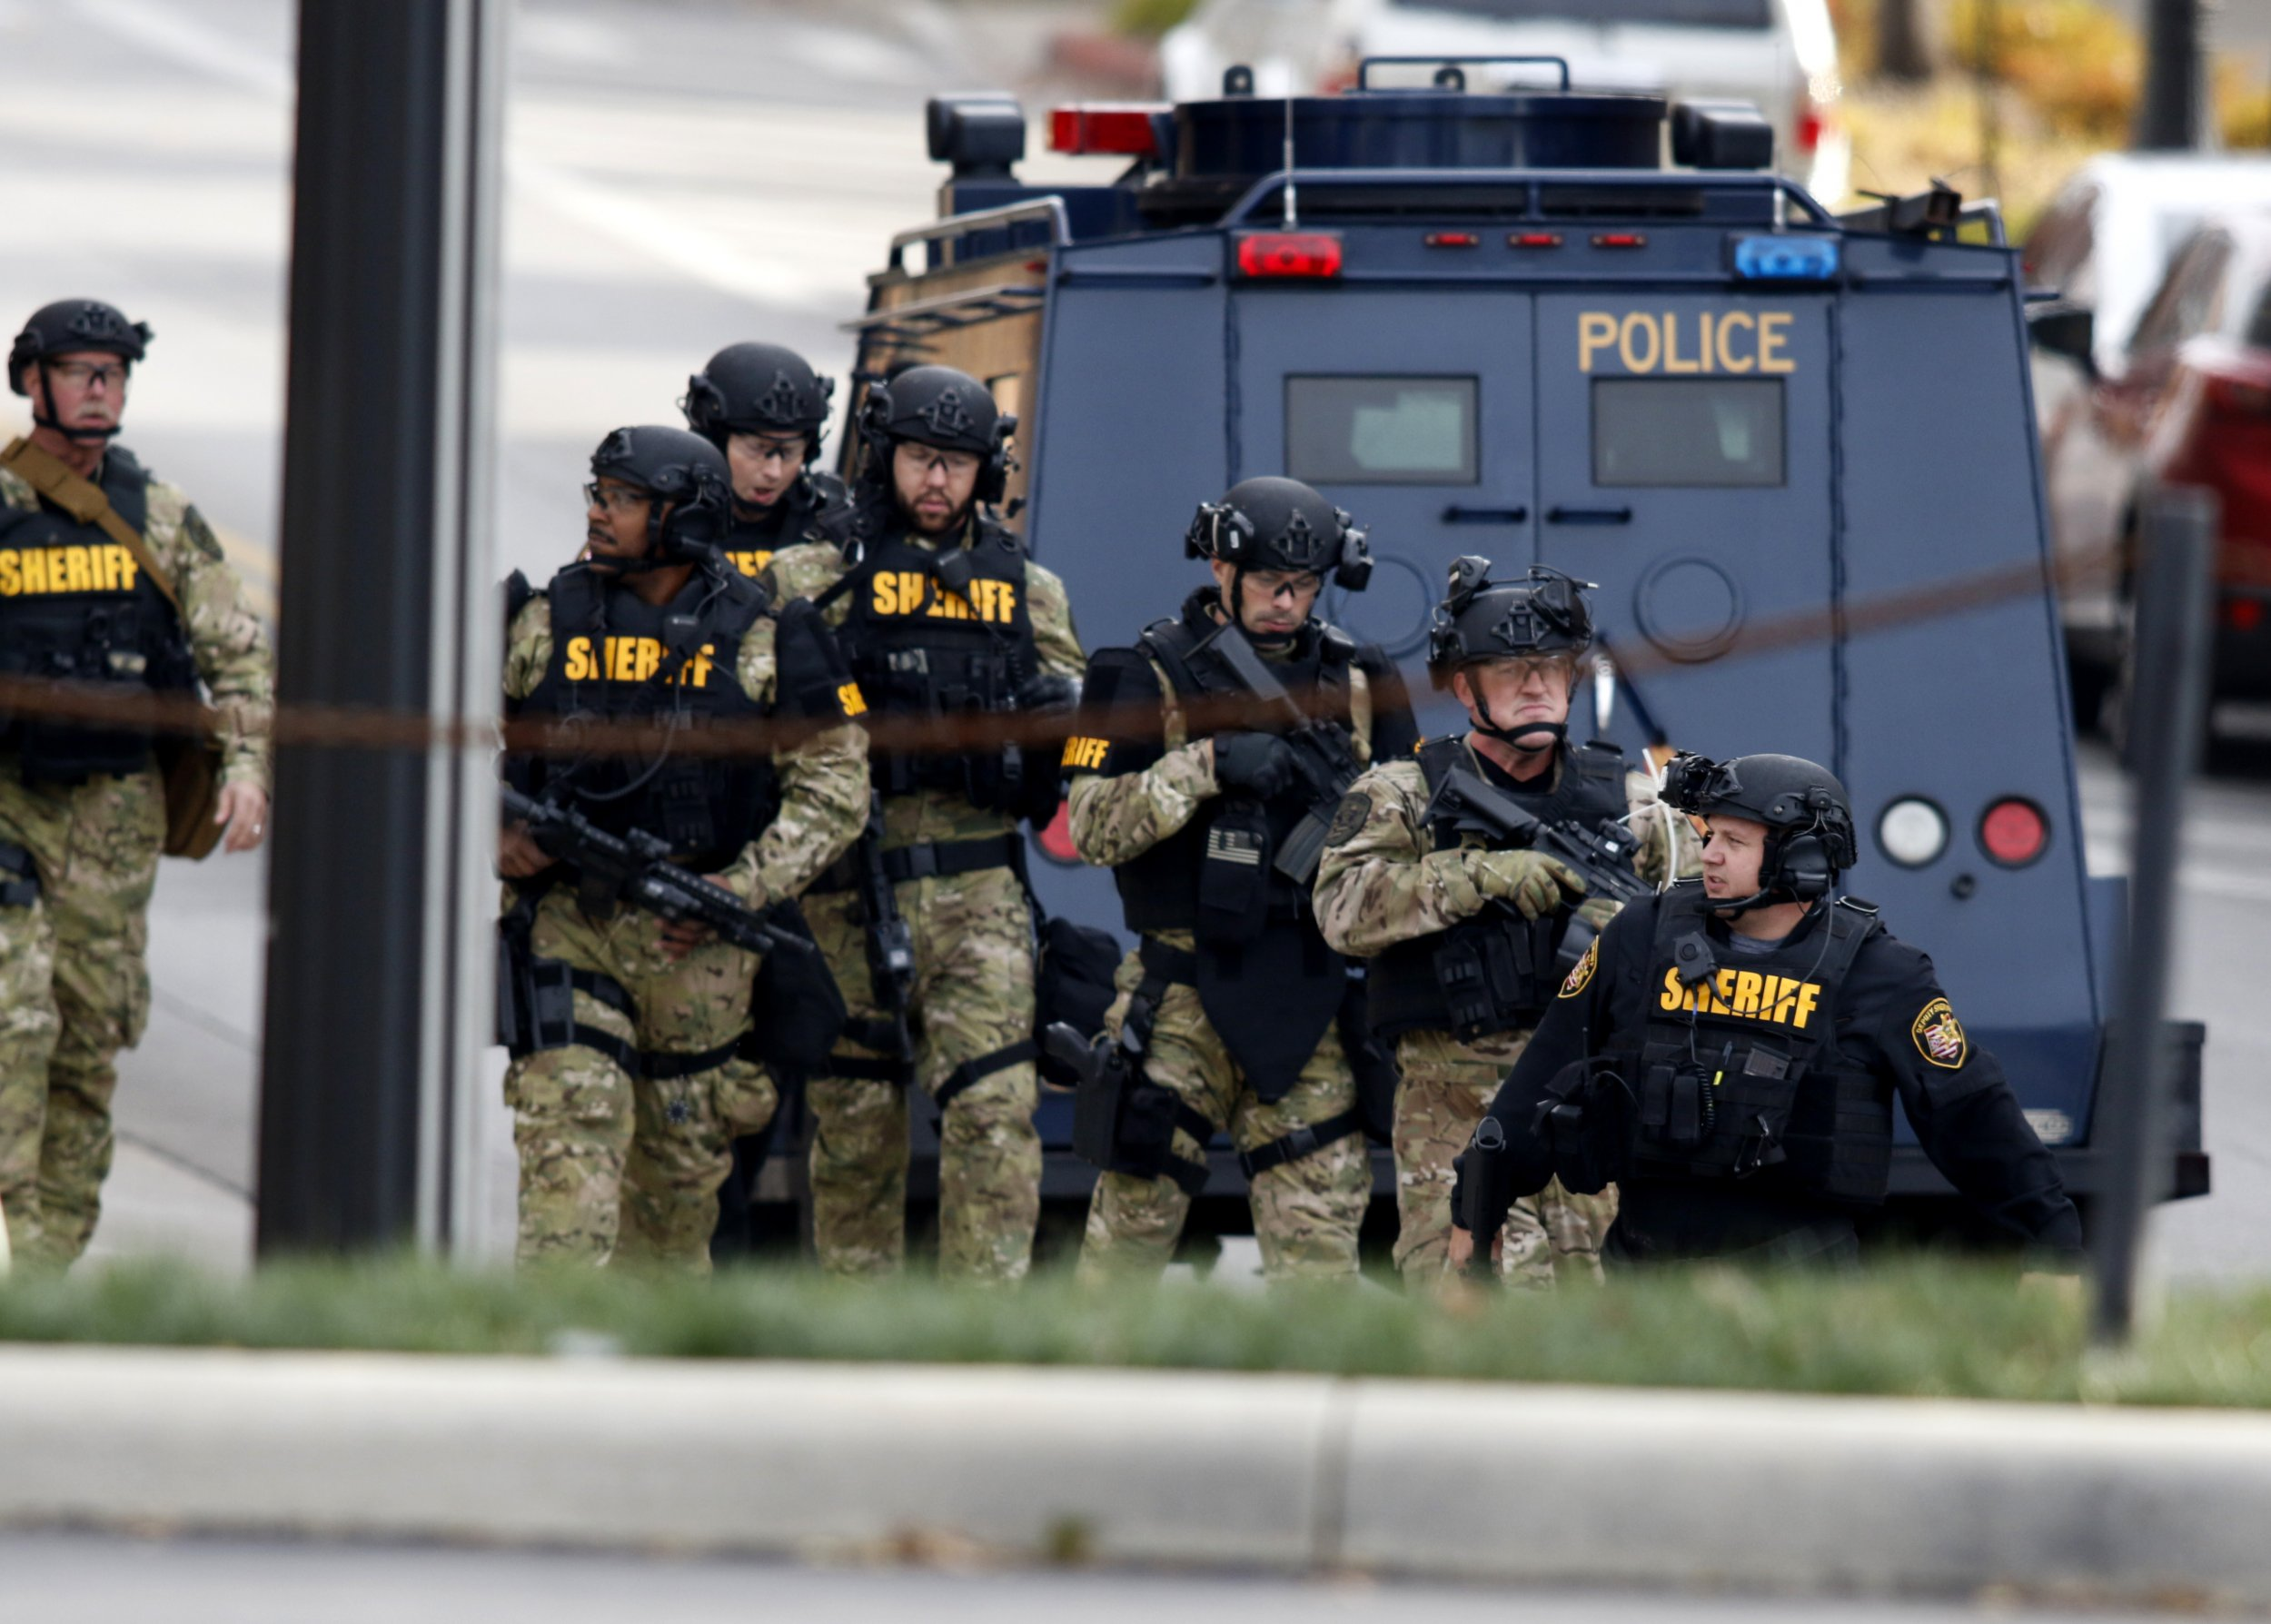 Police respond to attack on Ohio State campus